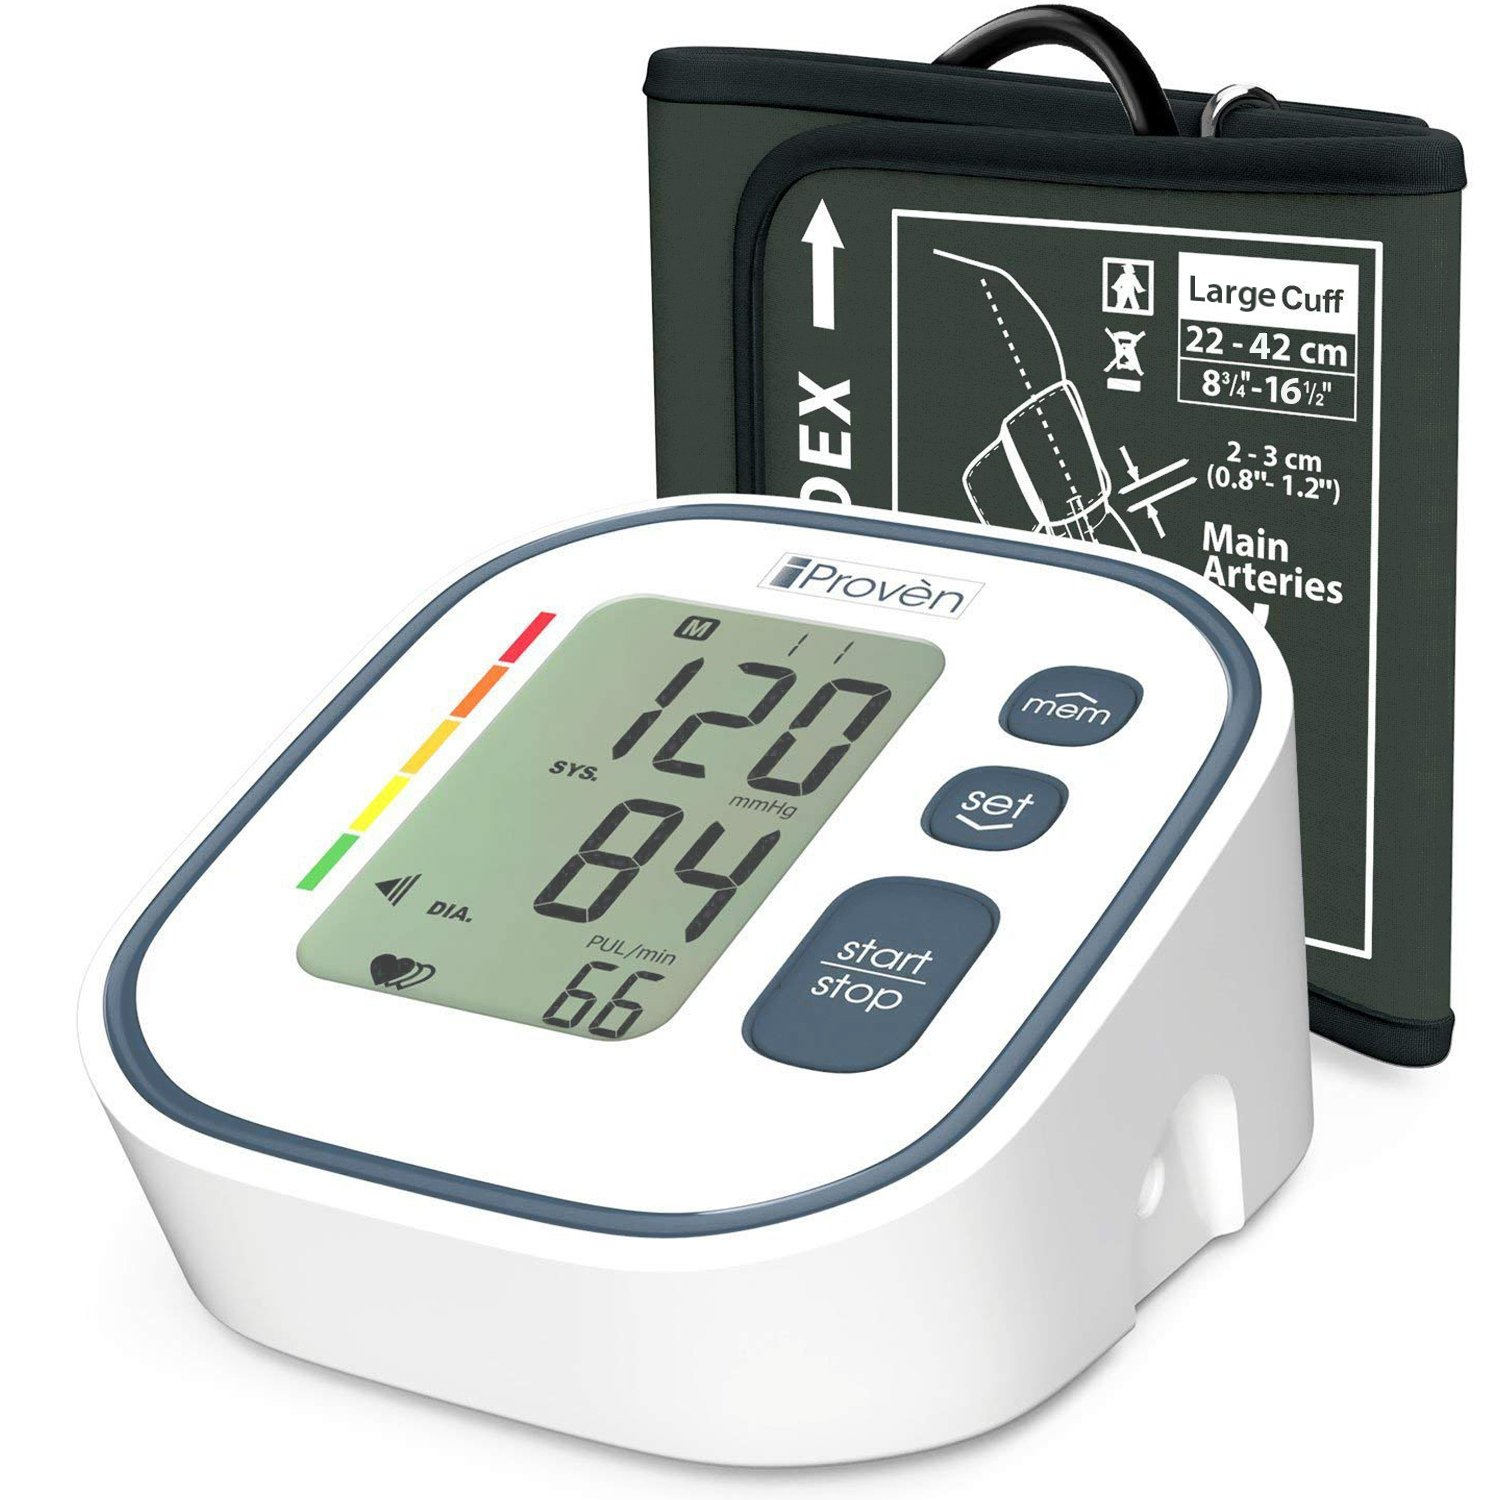 Digital Automatic Blood Pressure Monitor - Upper Arm Cuff - Large Screen - Accurate & Fast Reading Electronic Machine - Top Rated BP Monitors and Cuffs - FDA Approved - iProvèn BPM-634 - for Home Use by iProvèn (Image #1)